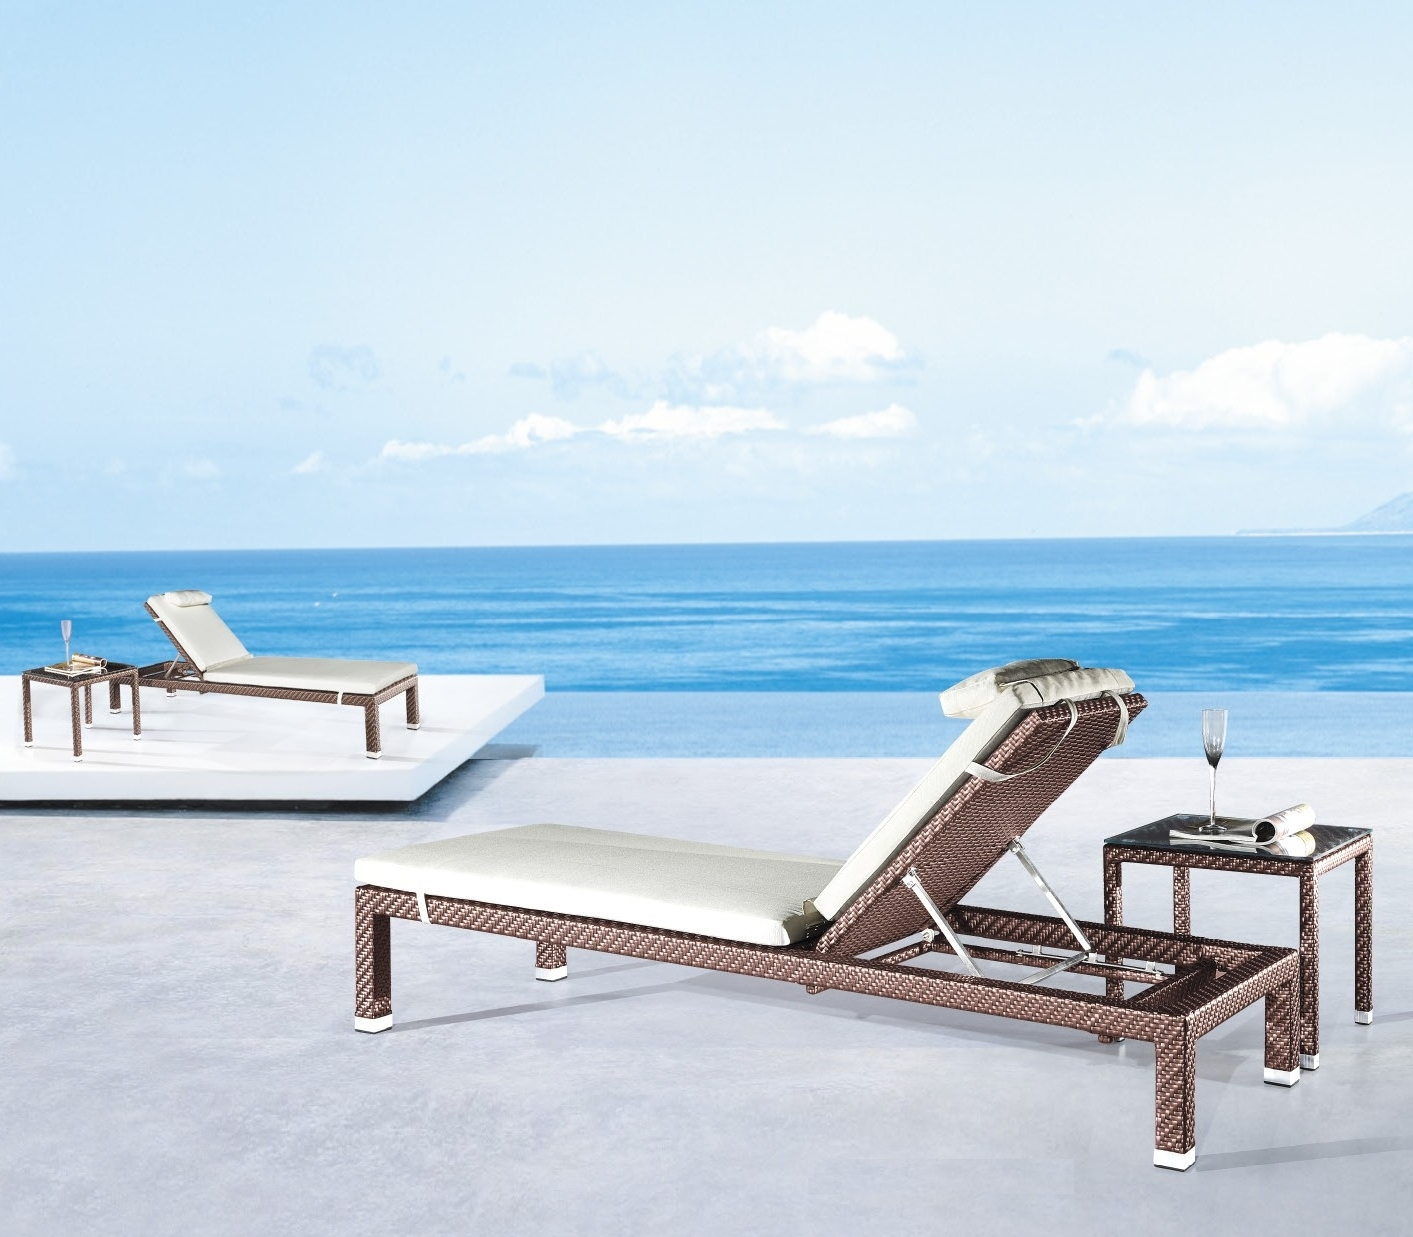 Inexpensive Outdoor Chaise Lounge Chairs With Regard To Widely Used Outdoor : Target Lounge Chairs Commercial Chaise Lounge Chairs (View 15 of 15)